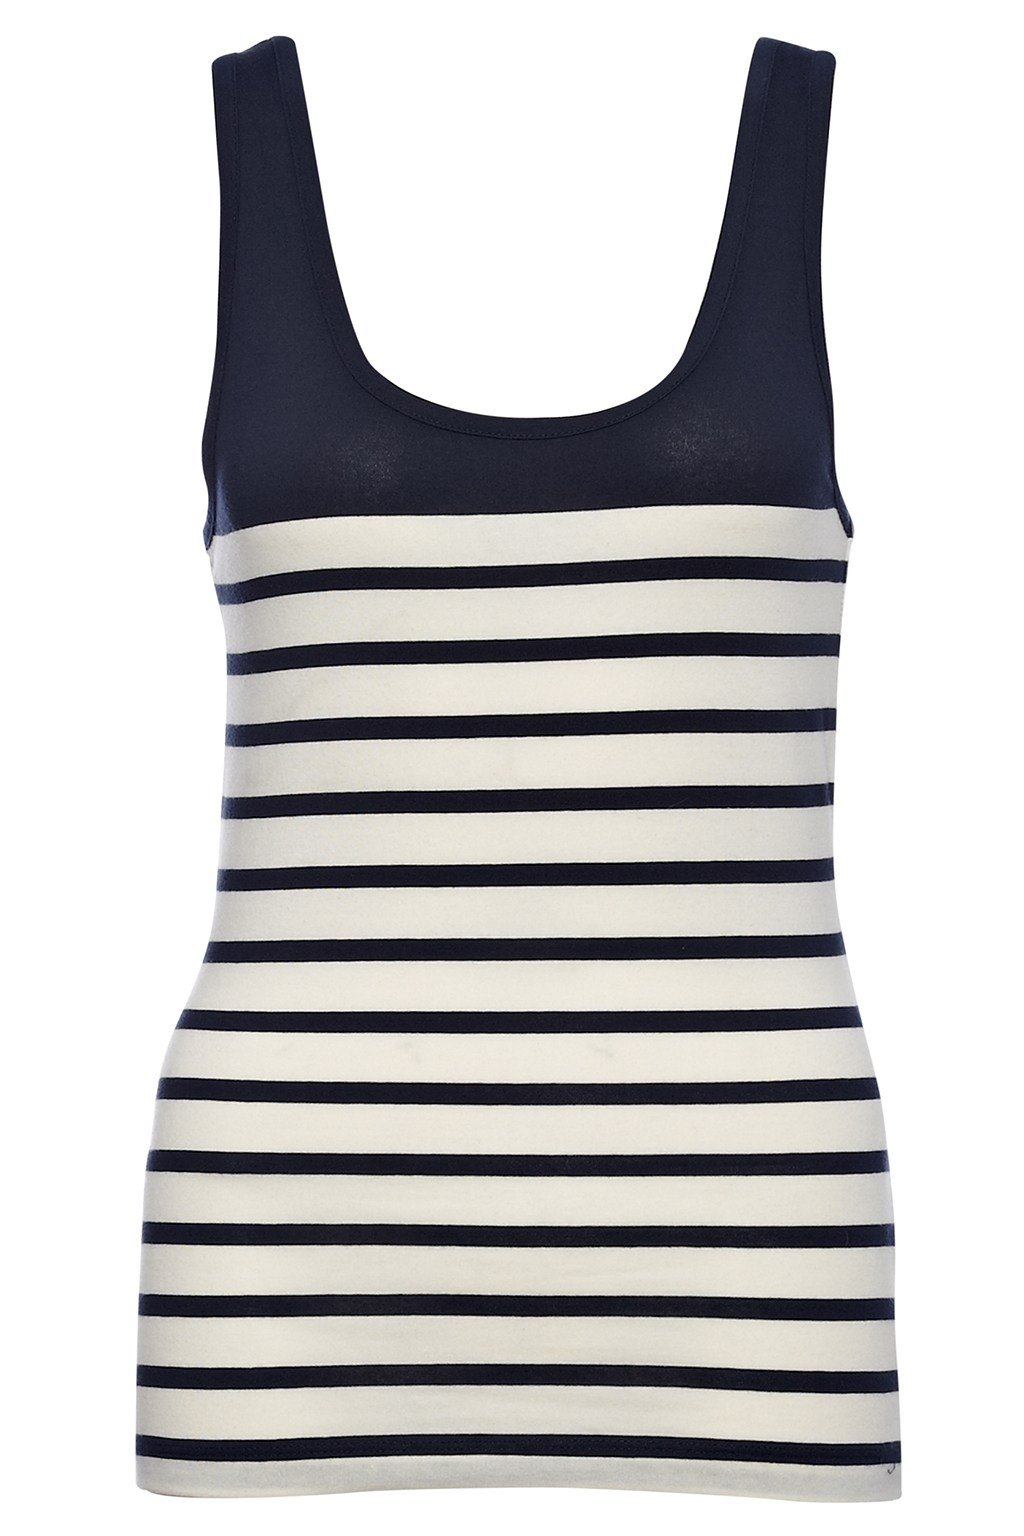 Discover men's vests with ASOS. Vests are the go to garment for comfort and style. Choose from plain vests to graphic print vests in our great range of vests.